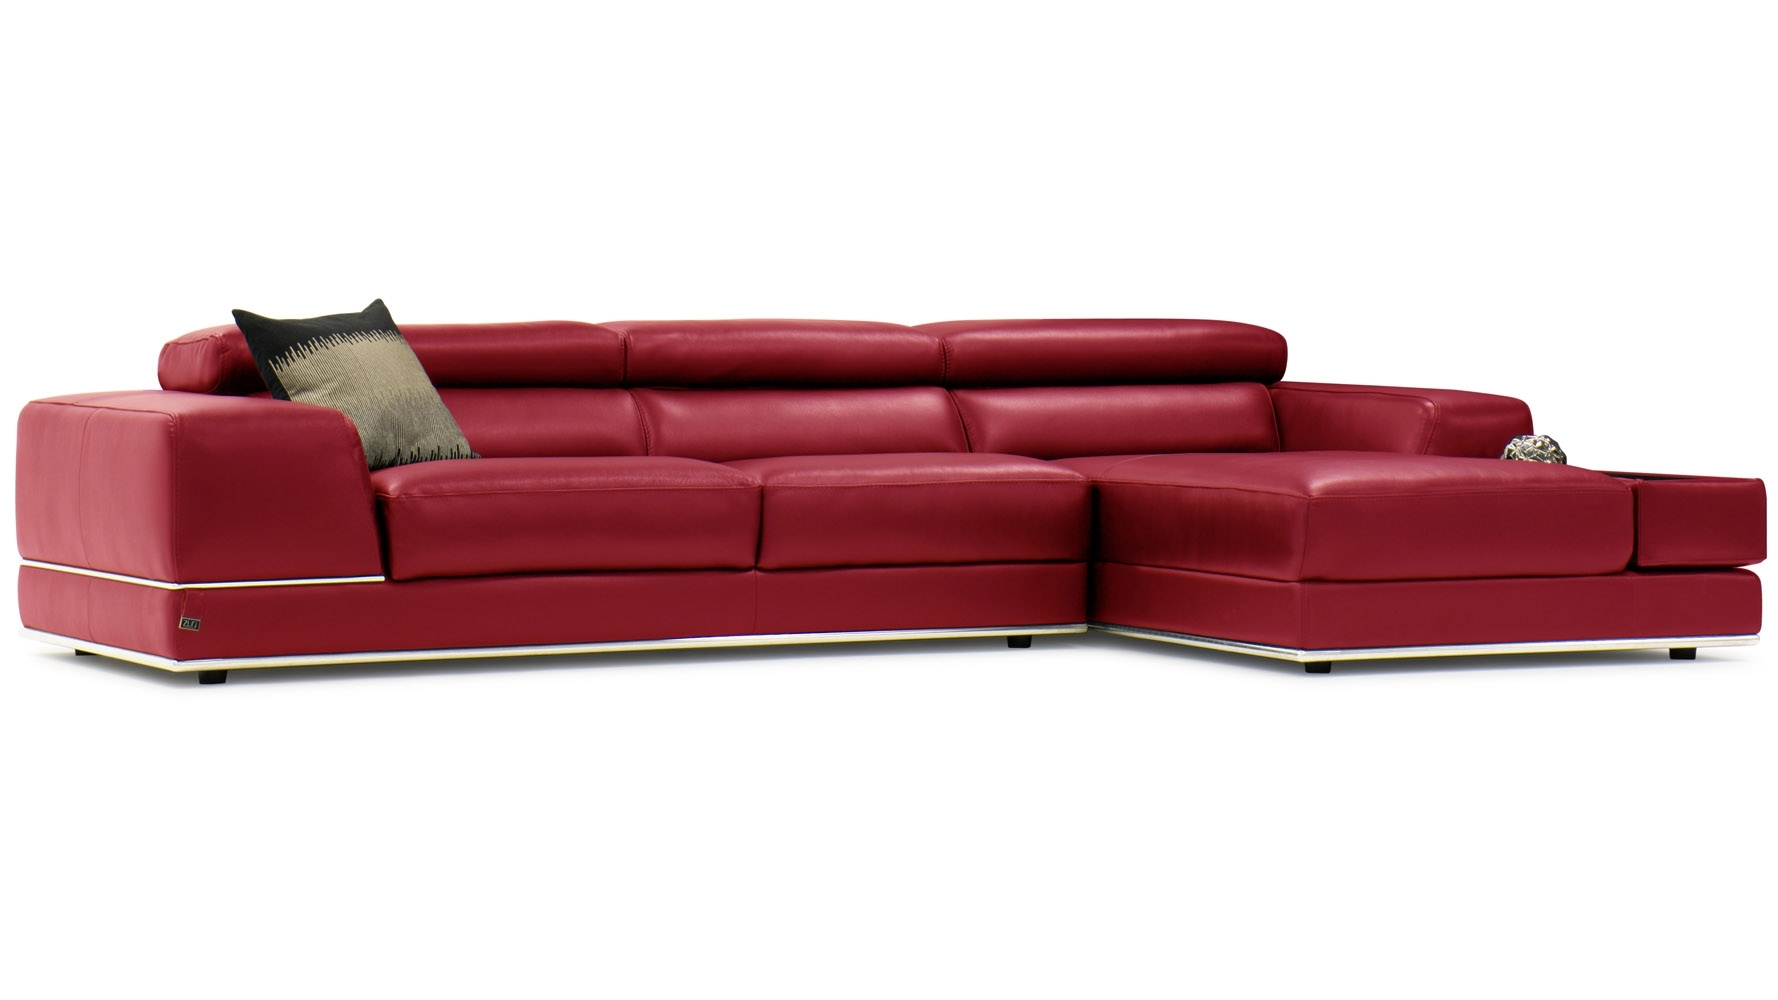 Encore Red Leather Sofa | Zuri Furniture Throughout Red Leather Sofas (Image 4 of 10)